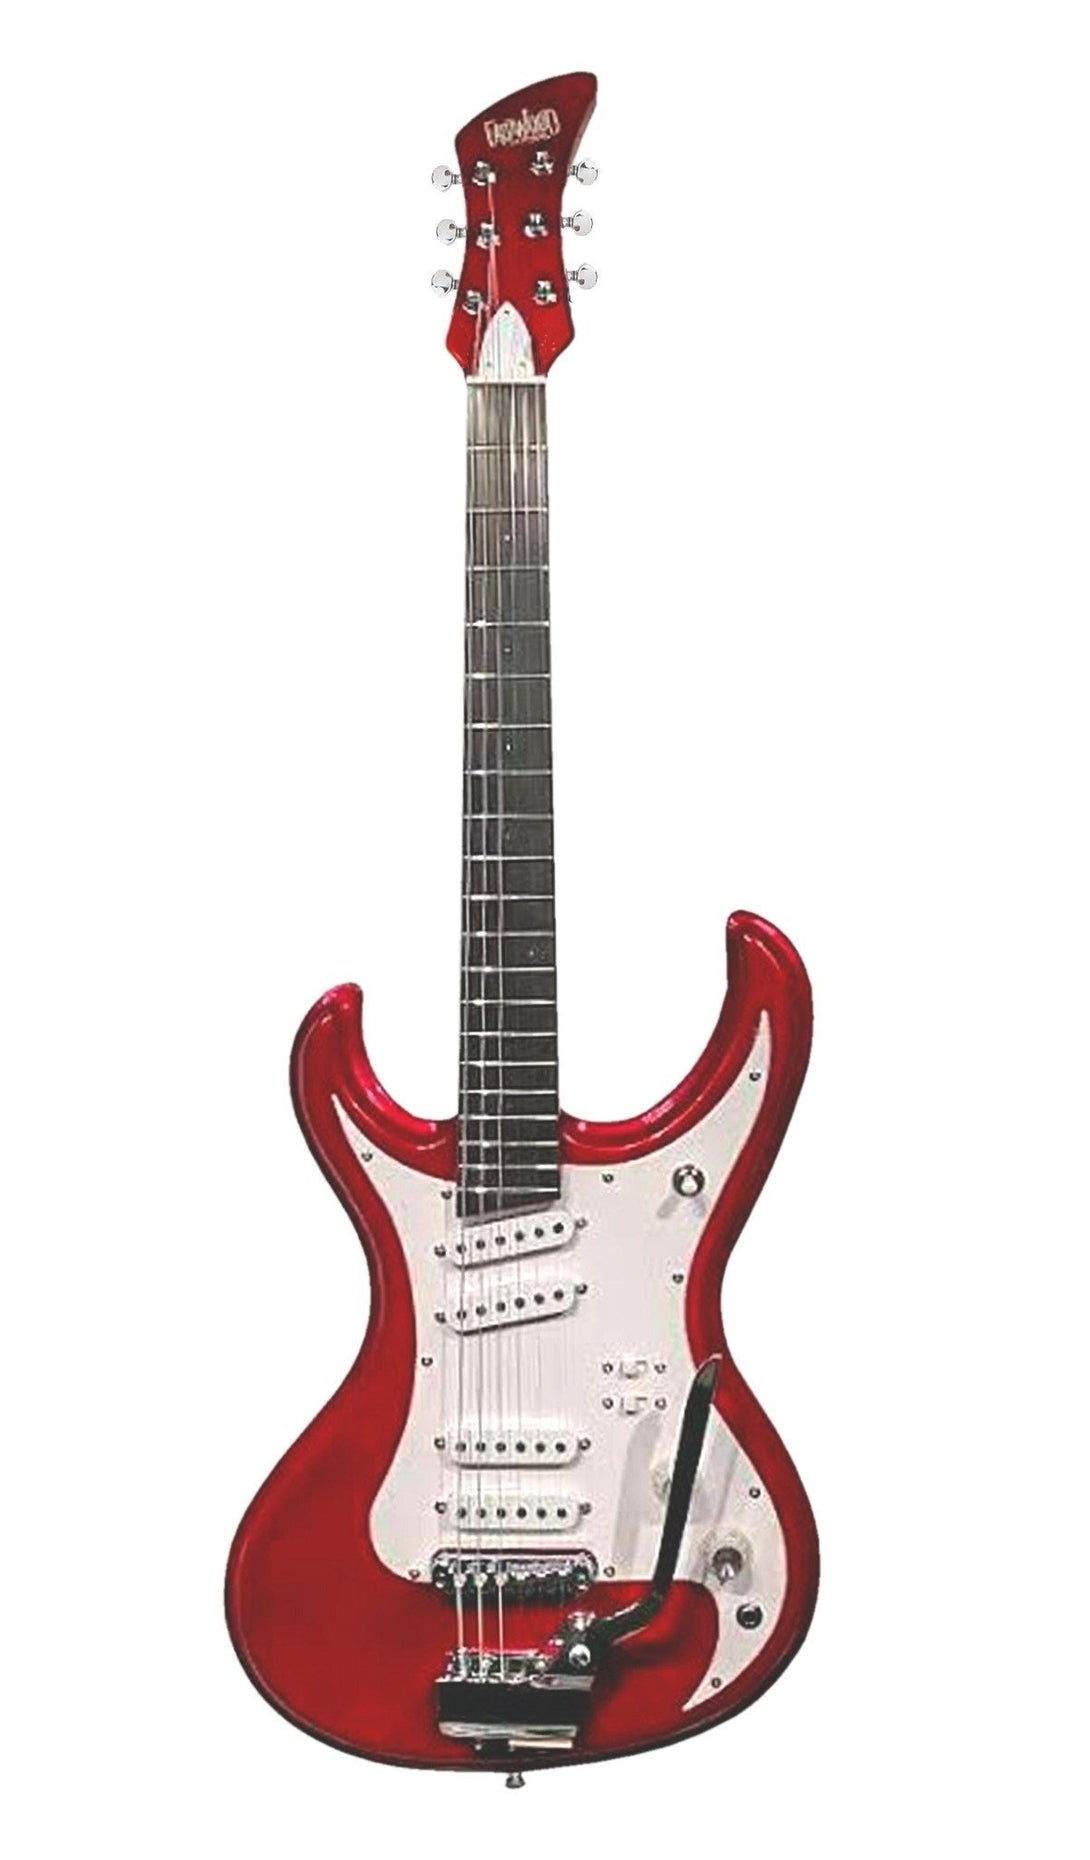 Eastwood Guitars LG 150T Metallic Red Angled